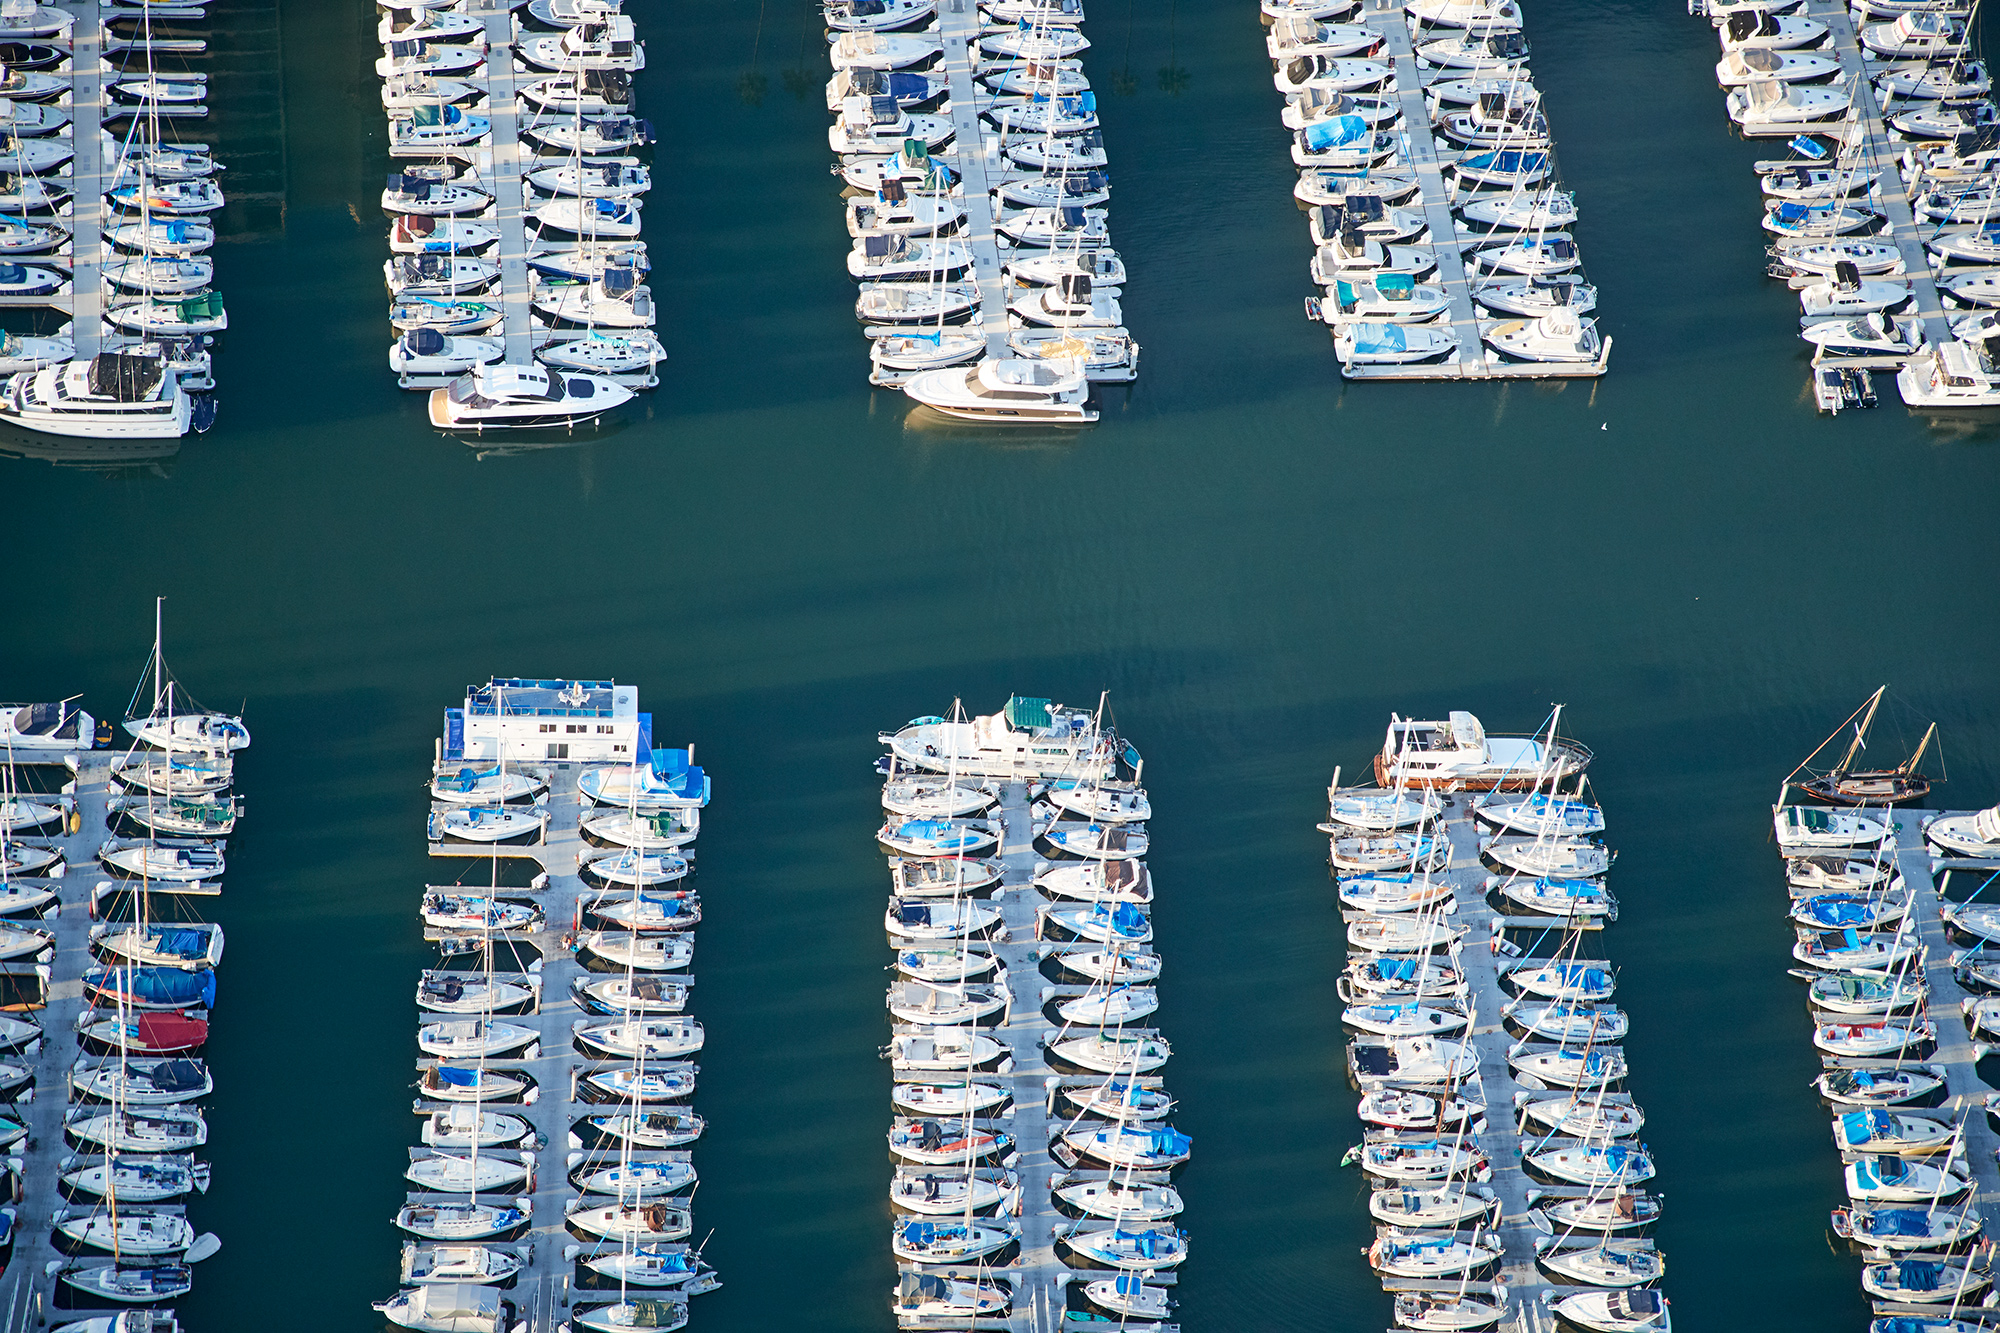 Marina Del Rey is the biggest inland marina in the world